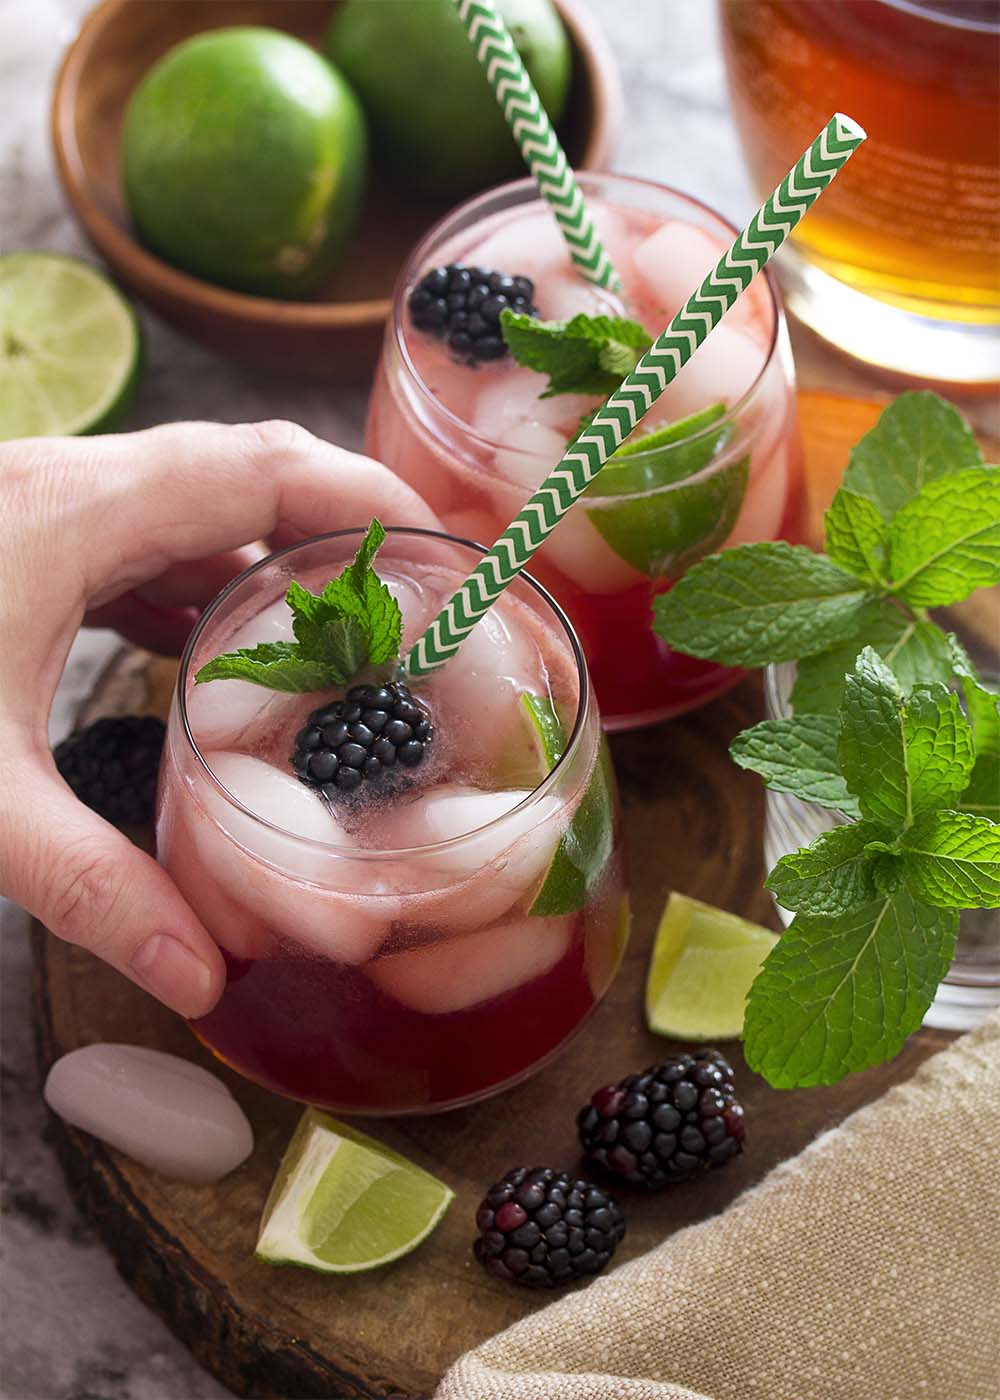 Top view of a hand reaching for a blackberry mojito.